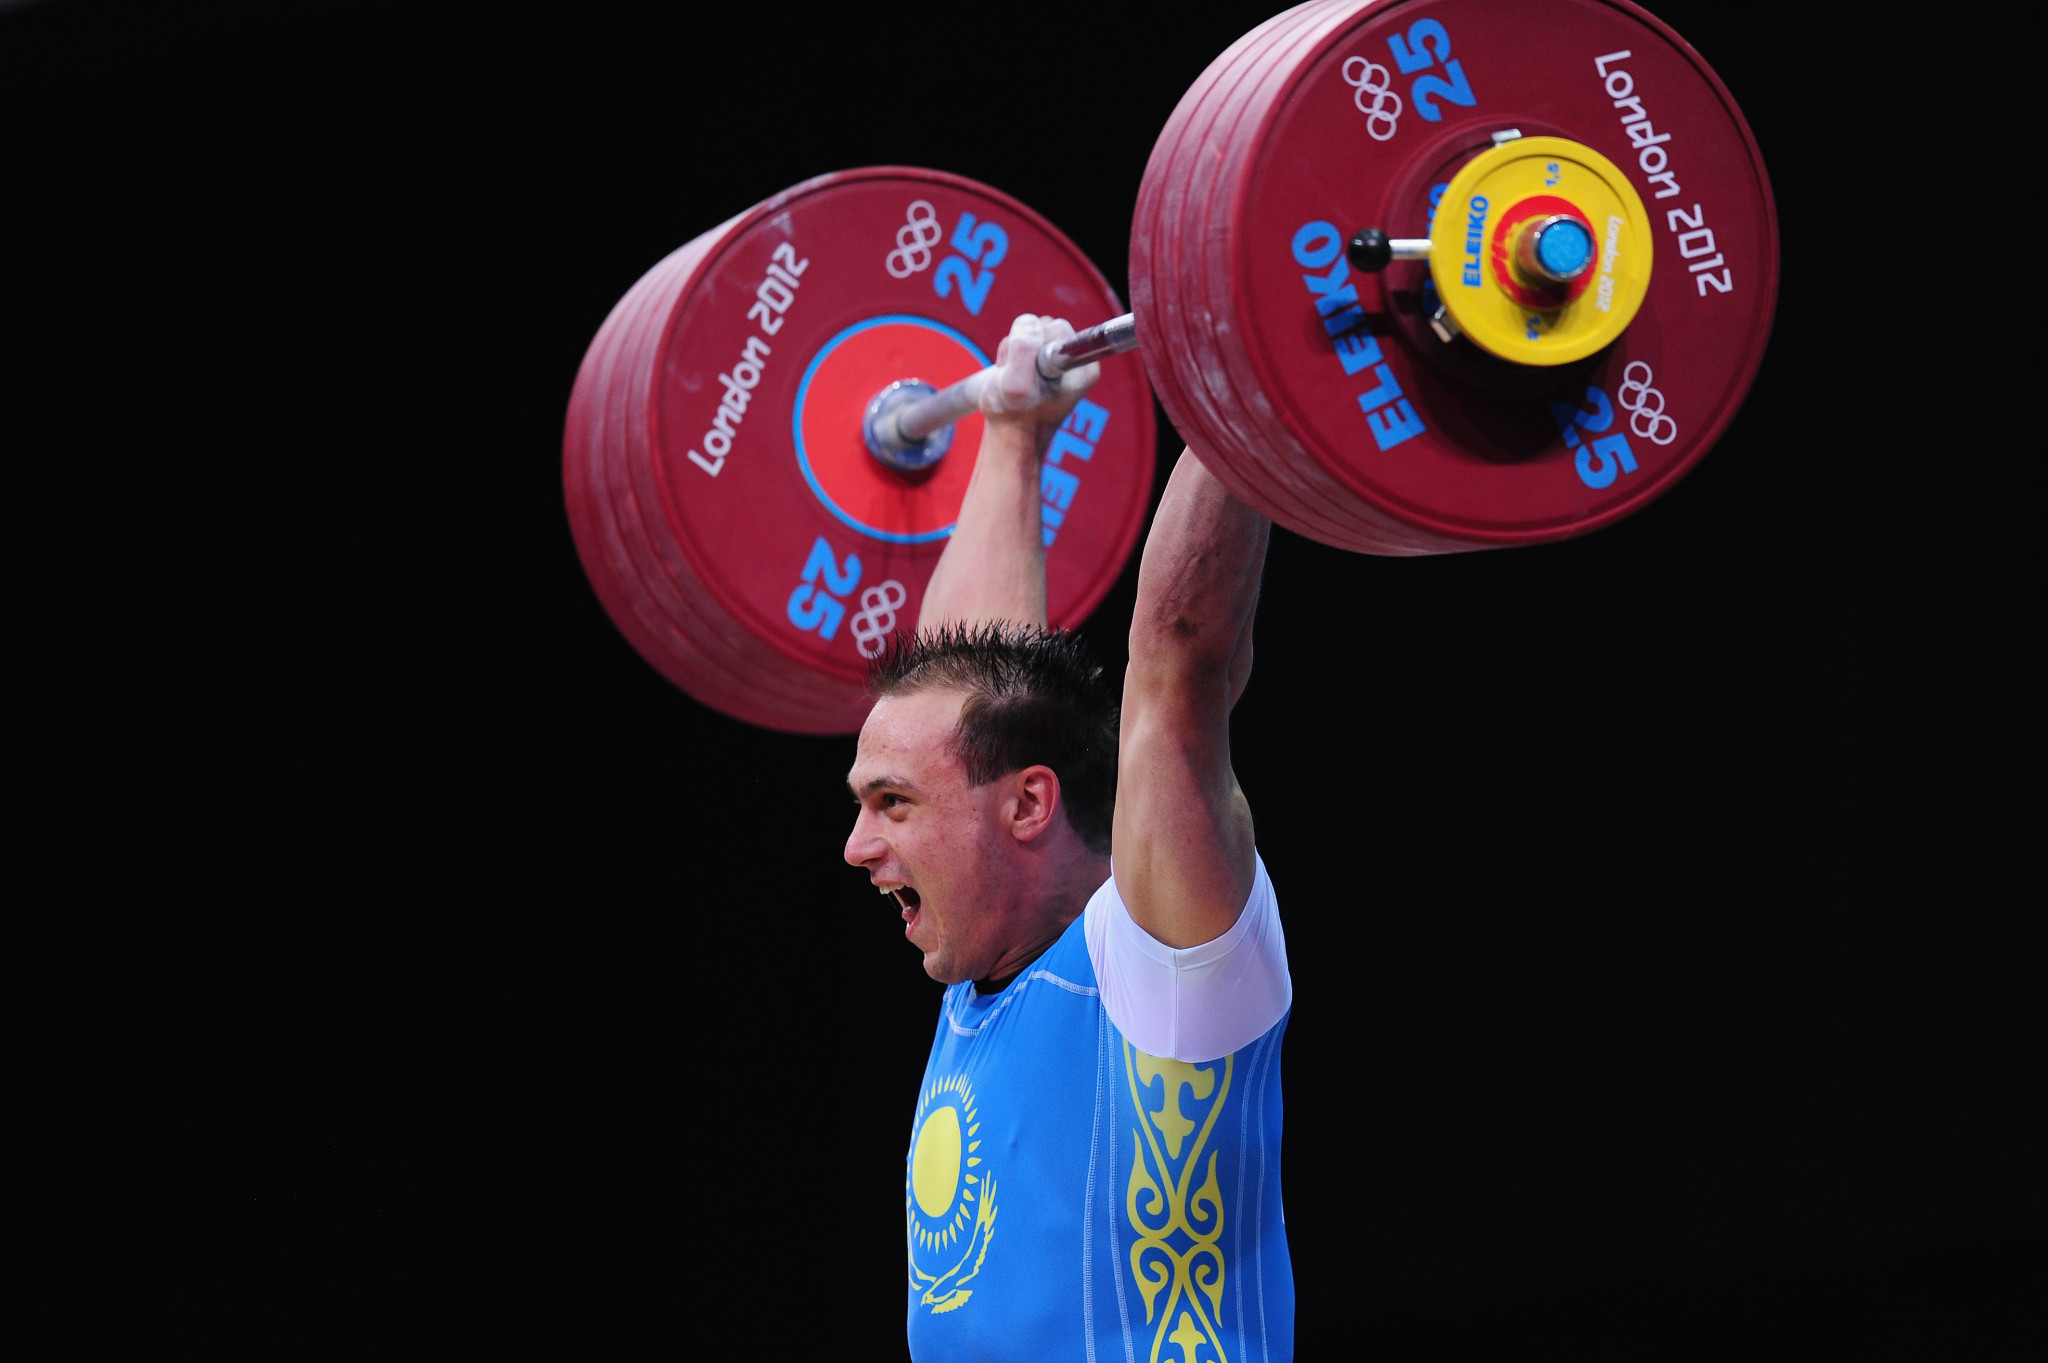 Exclusive: Olympic medallists slam weightlifting dopers - and those who support them